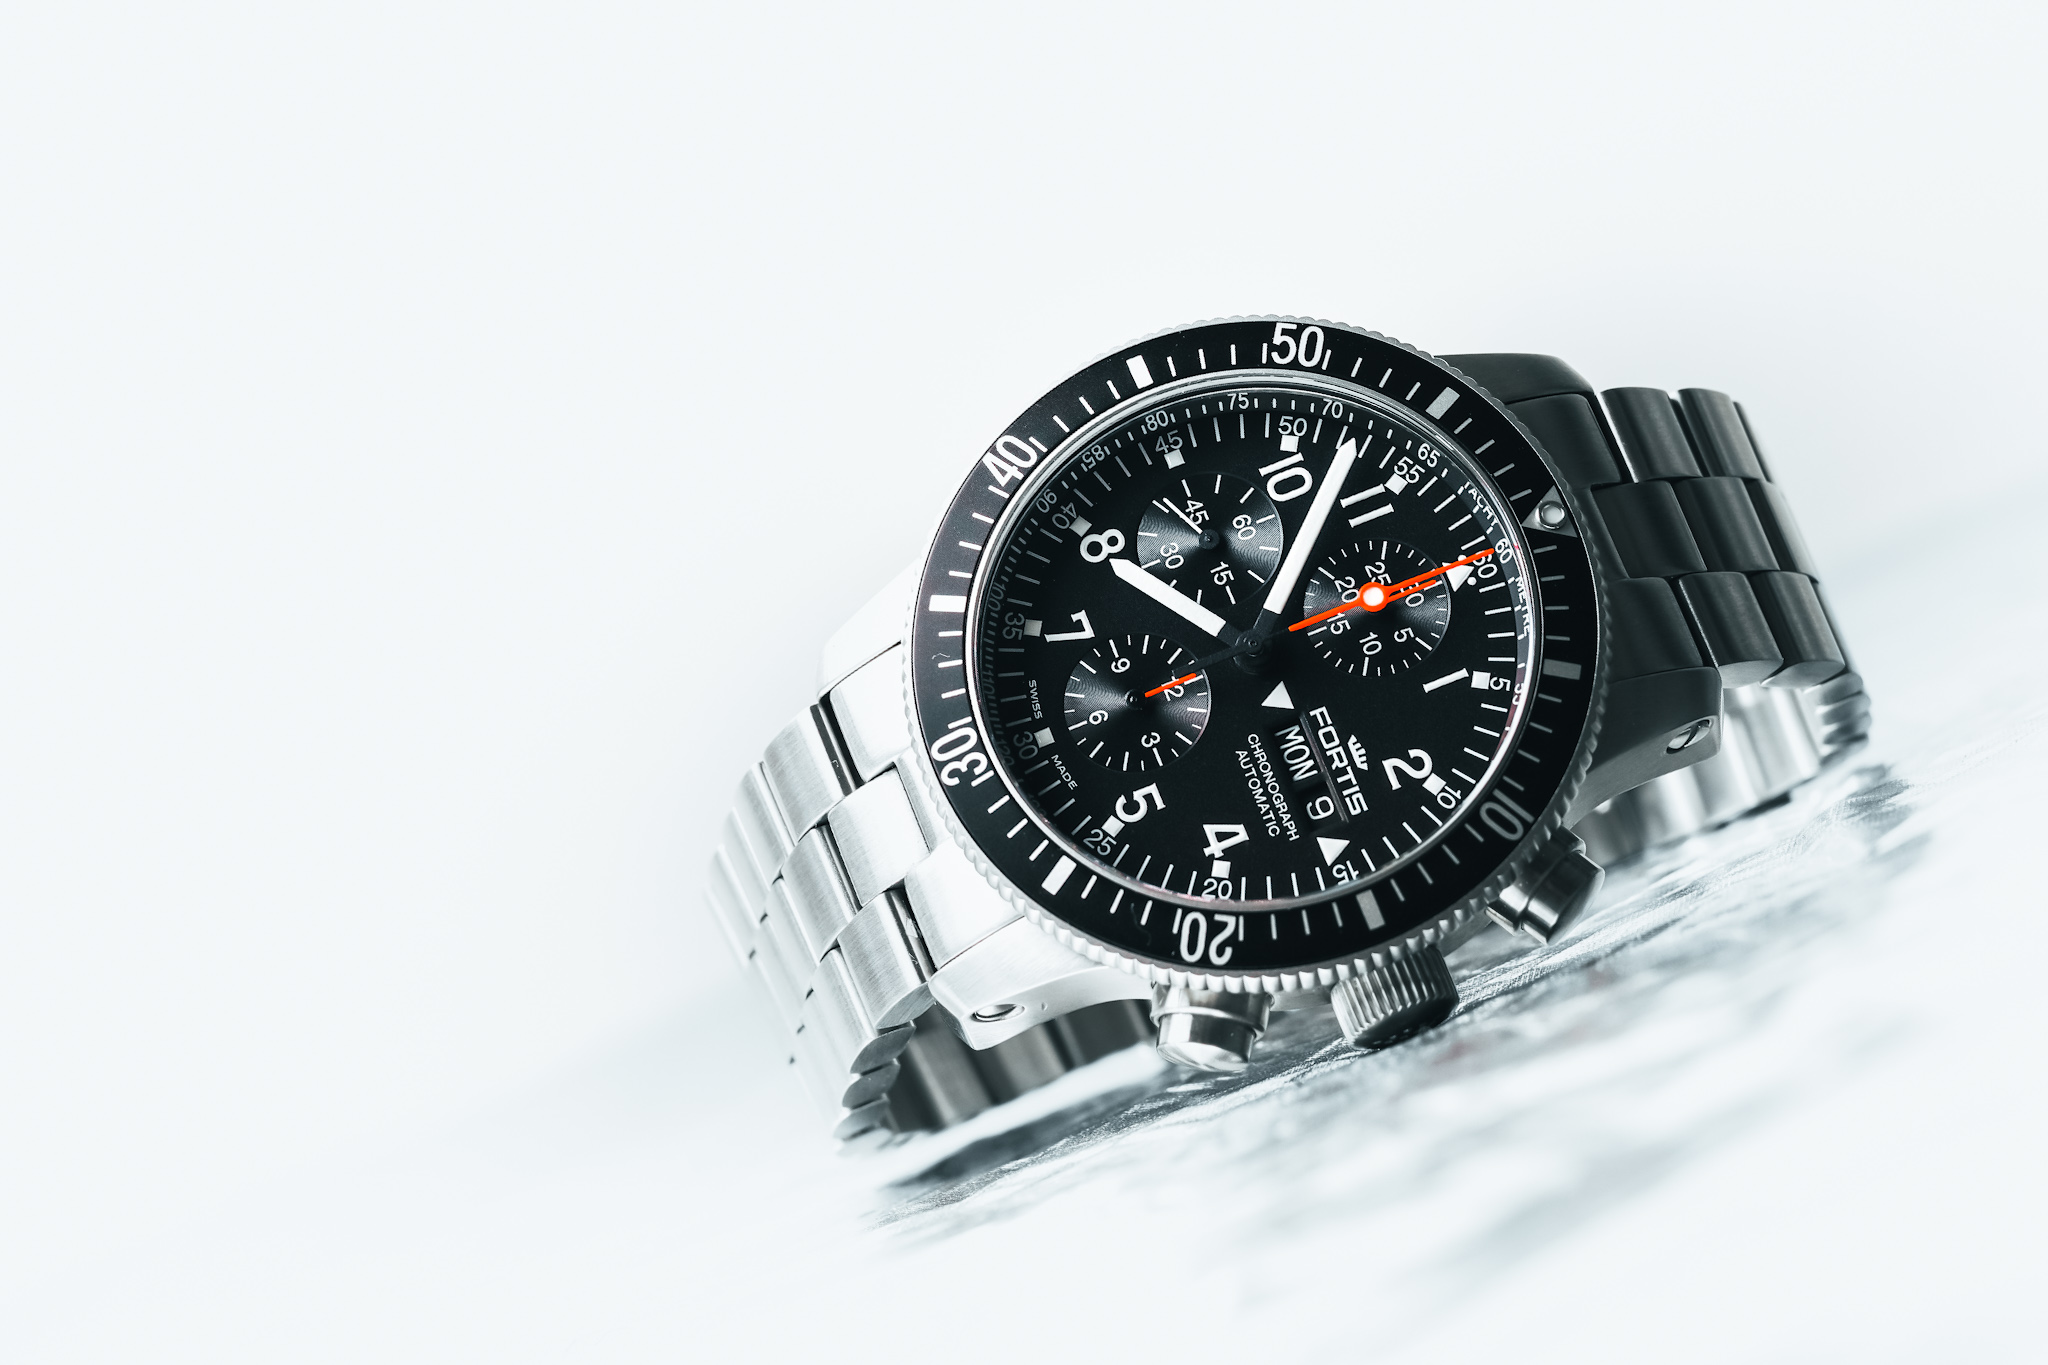 fortis b42 official cosmonauts chronograph abtw 1